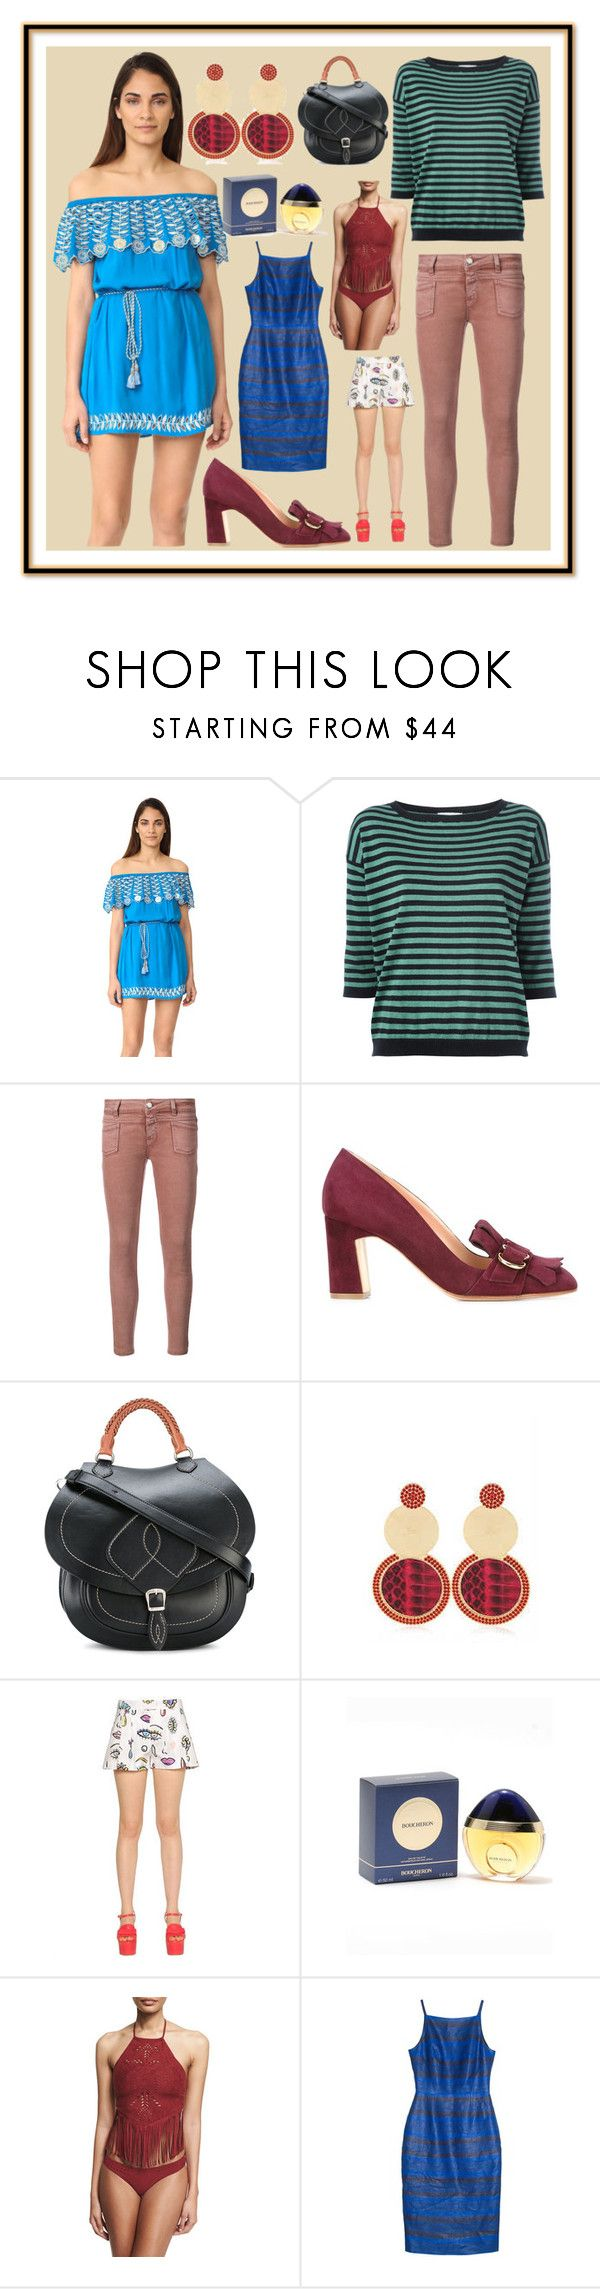 """""""Super Fashion"""" by cate-jennifer ❤ liked on Polyvore featuring RahiCali, Closed, Rupert Sanderson, Maison Margiela, Boutique Moschino, Boucheron, ále by Alessandra and Martin Grant"""